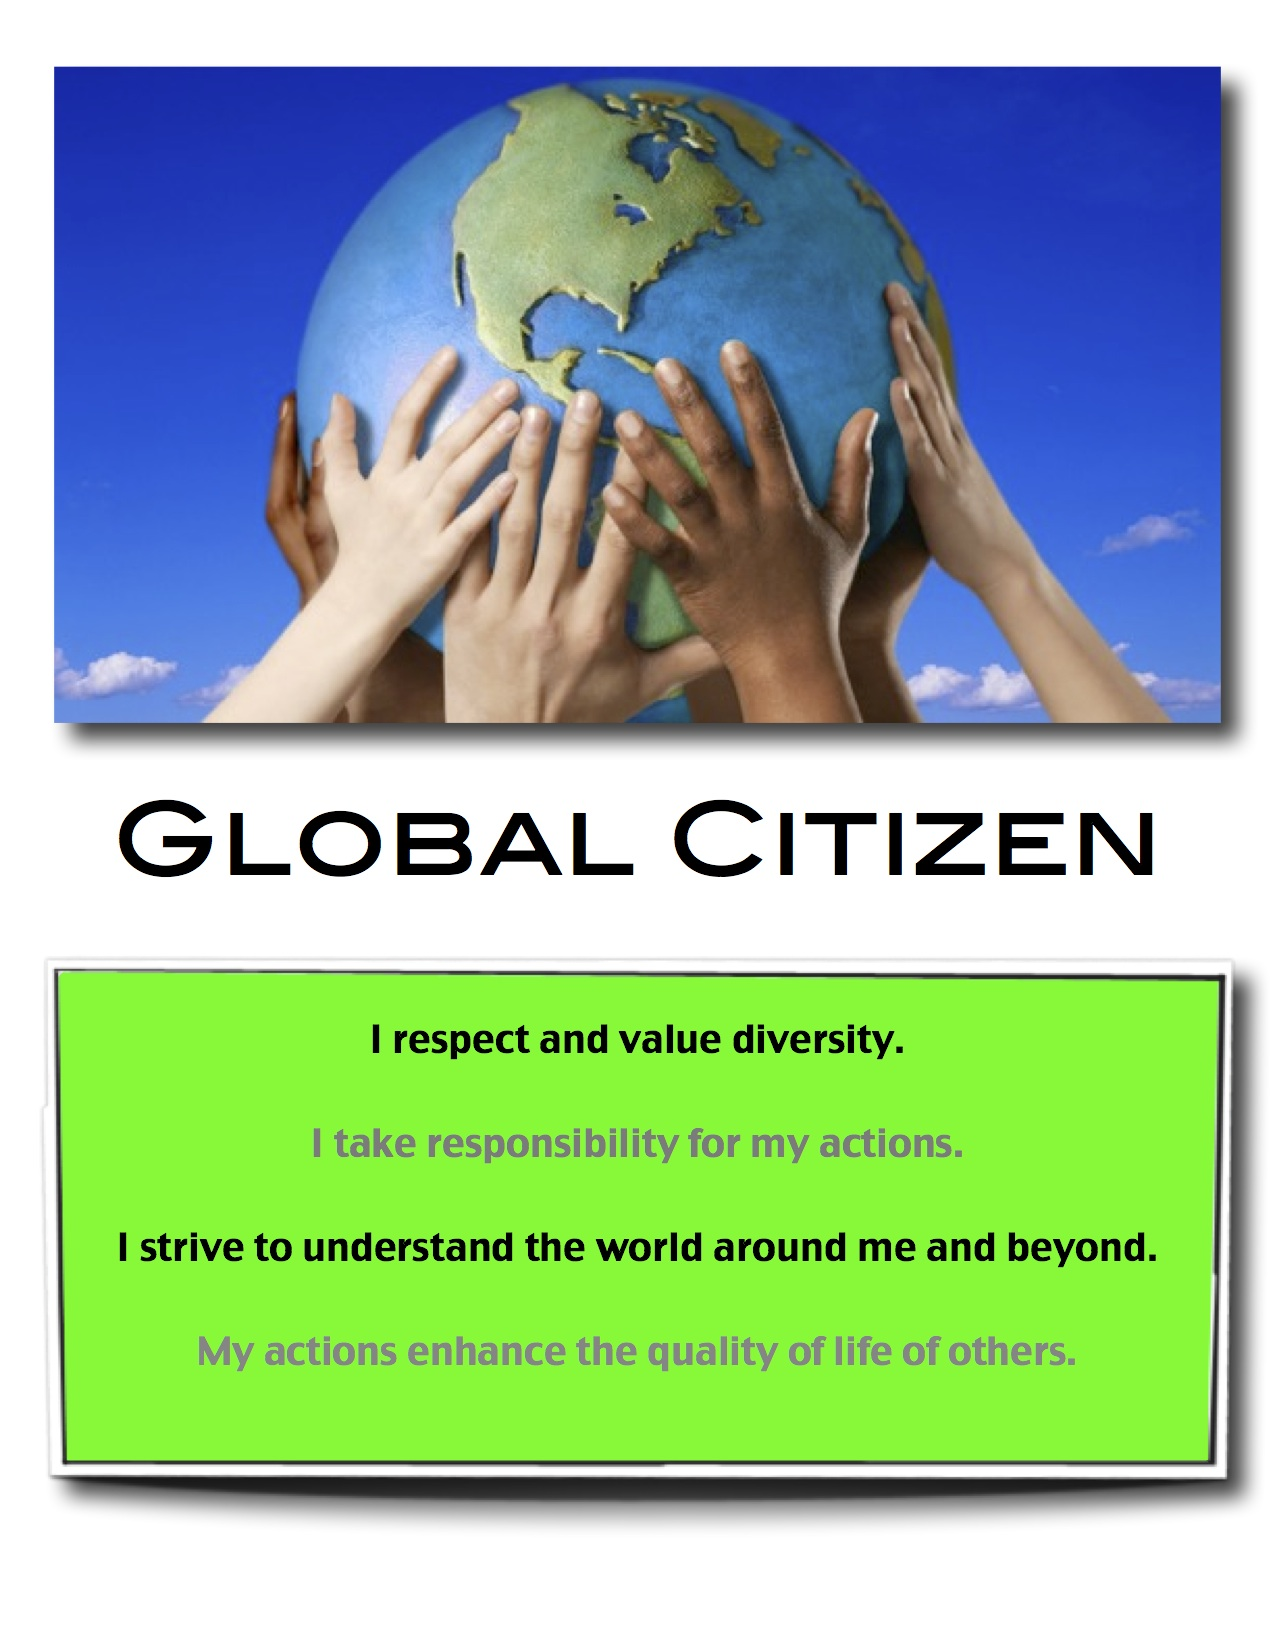 an understanding of the essence of being a global citizen Training future members of the world with an understanding of global into close consideration the essence of global global citizen as.